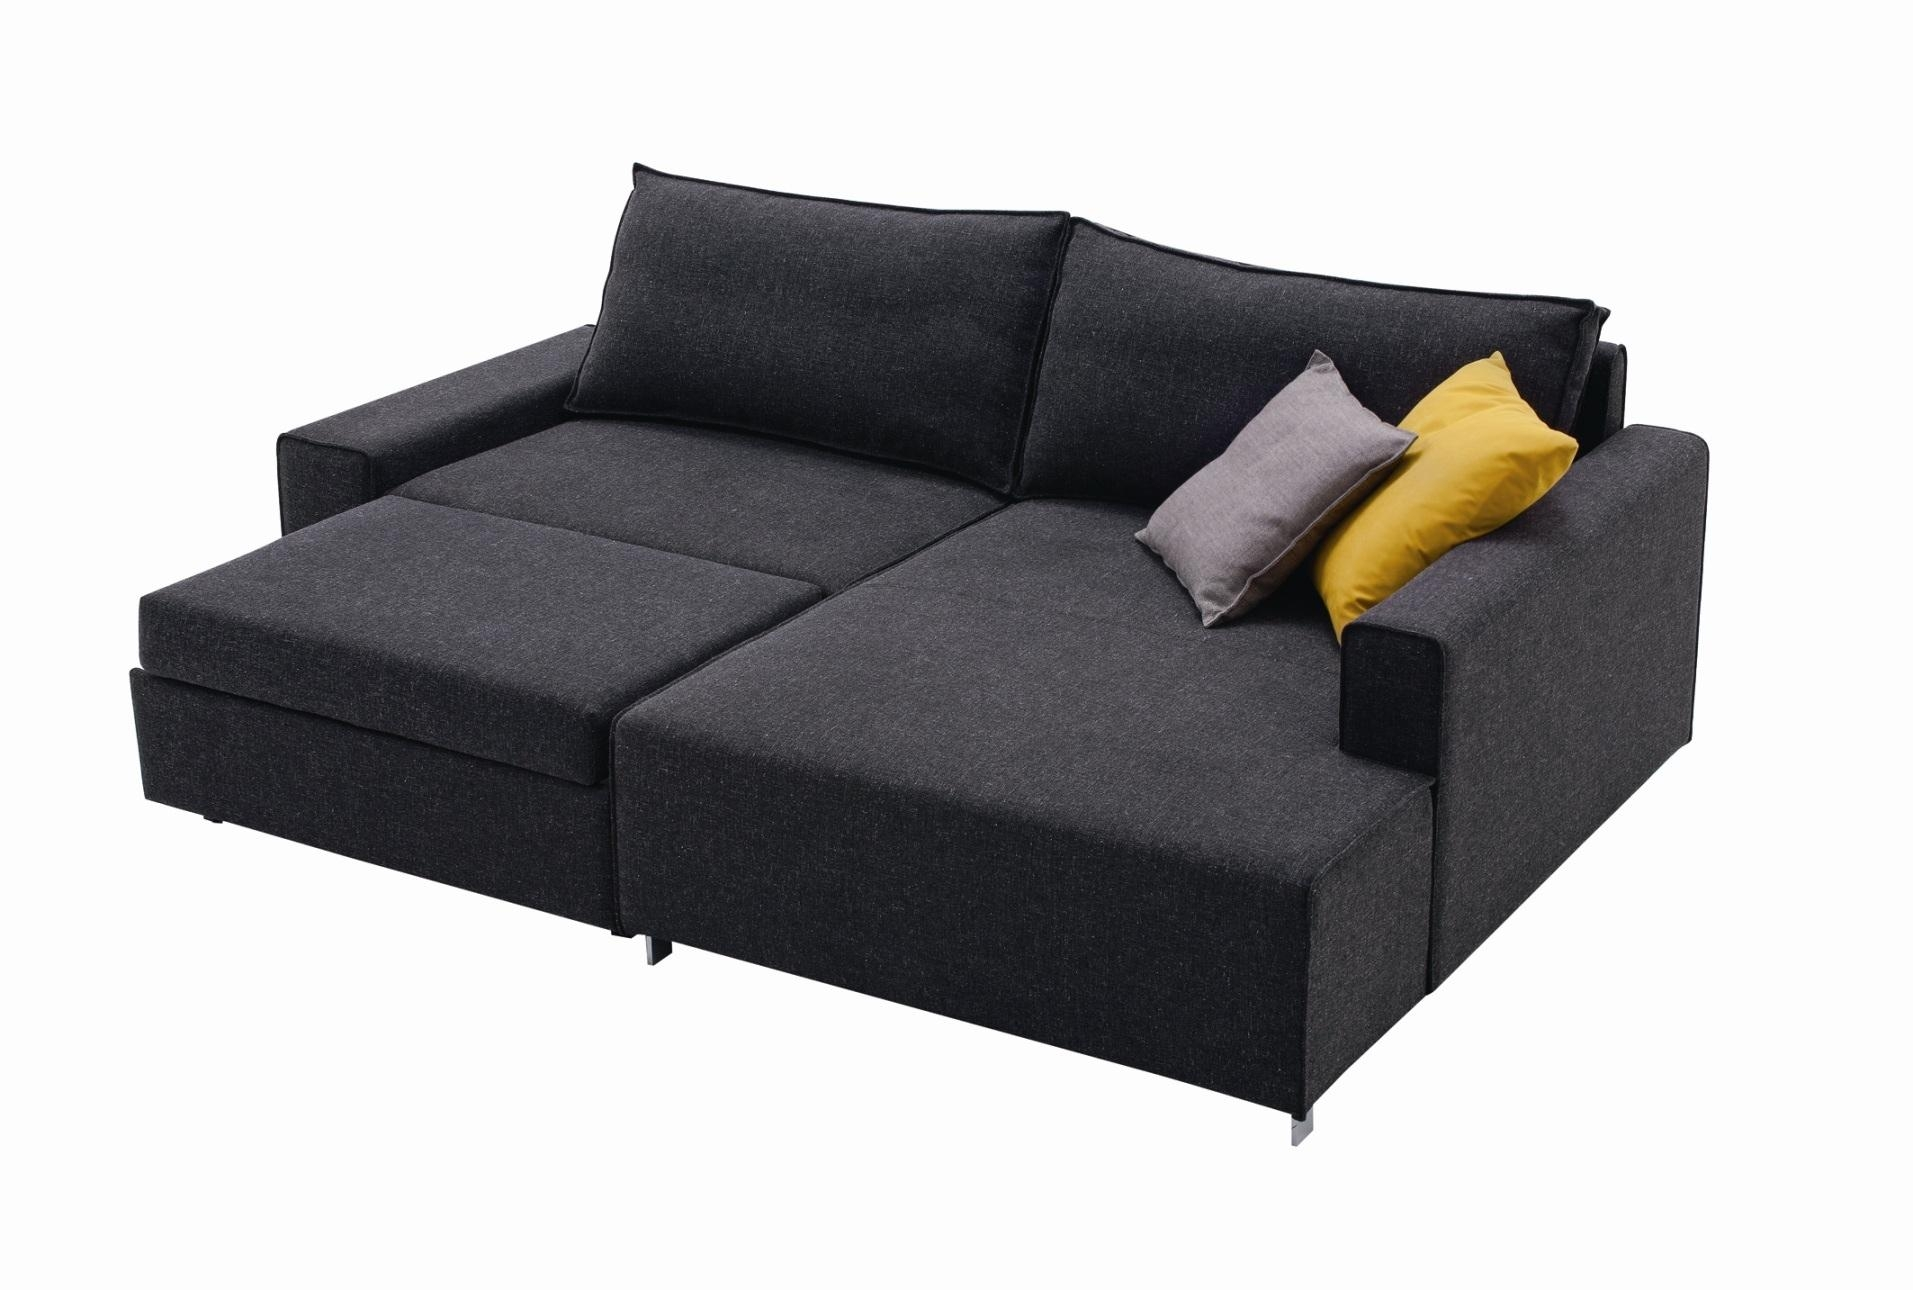 Ikea Sofa Bed Mini Sofa Ikea